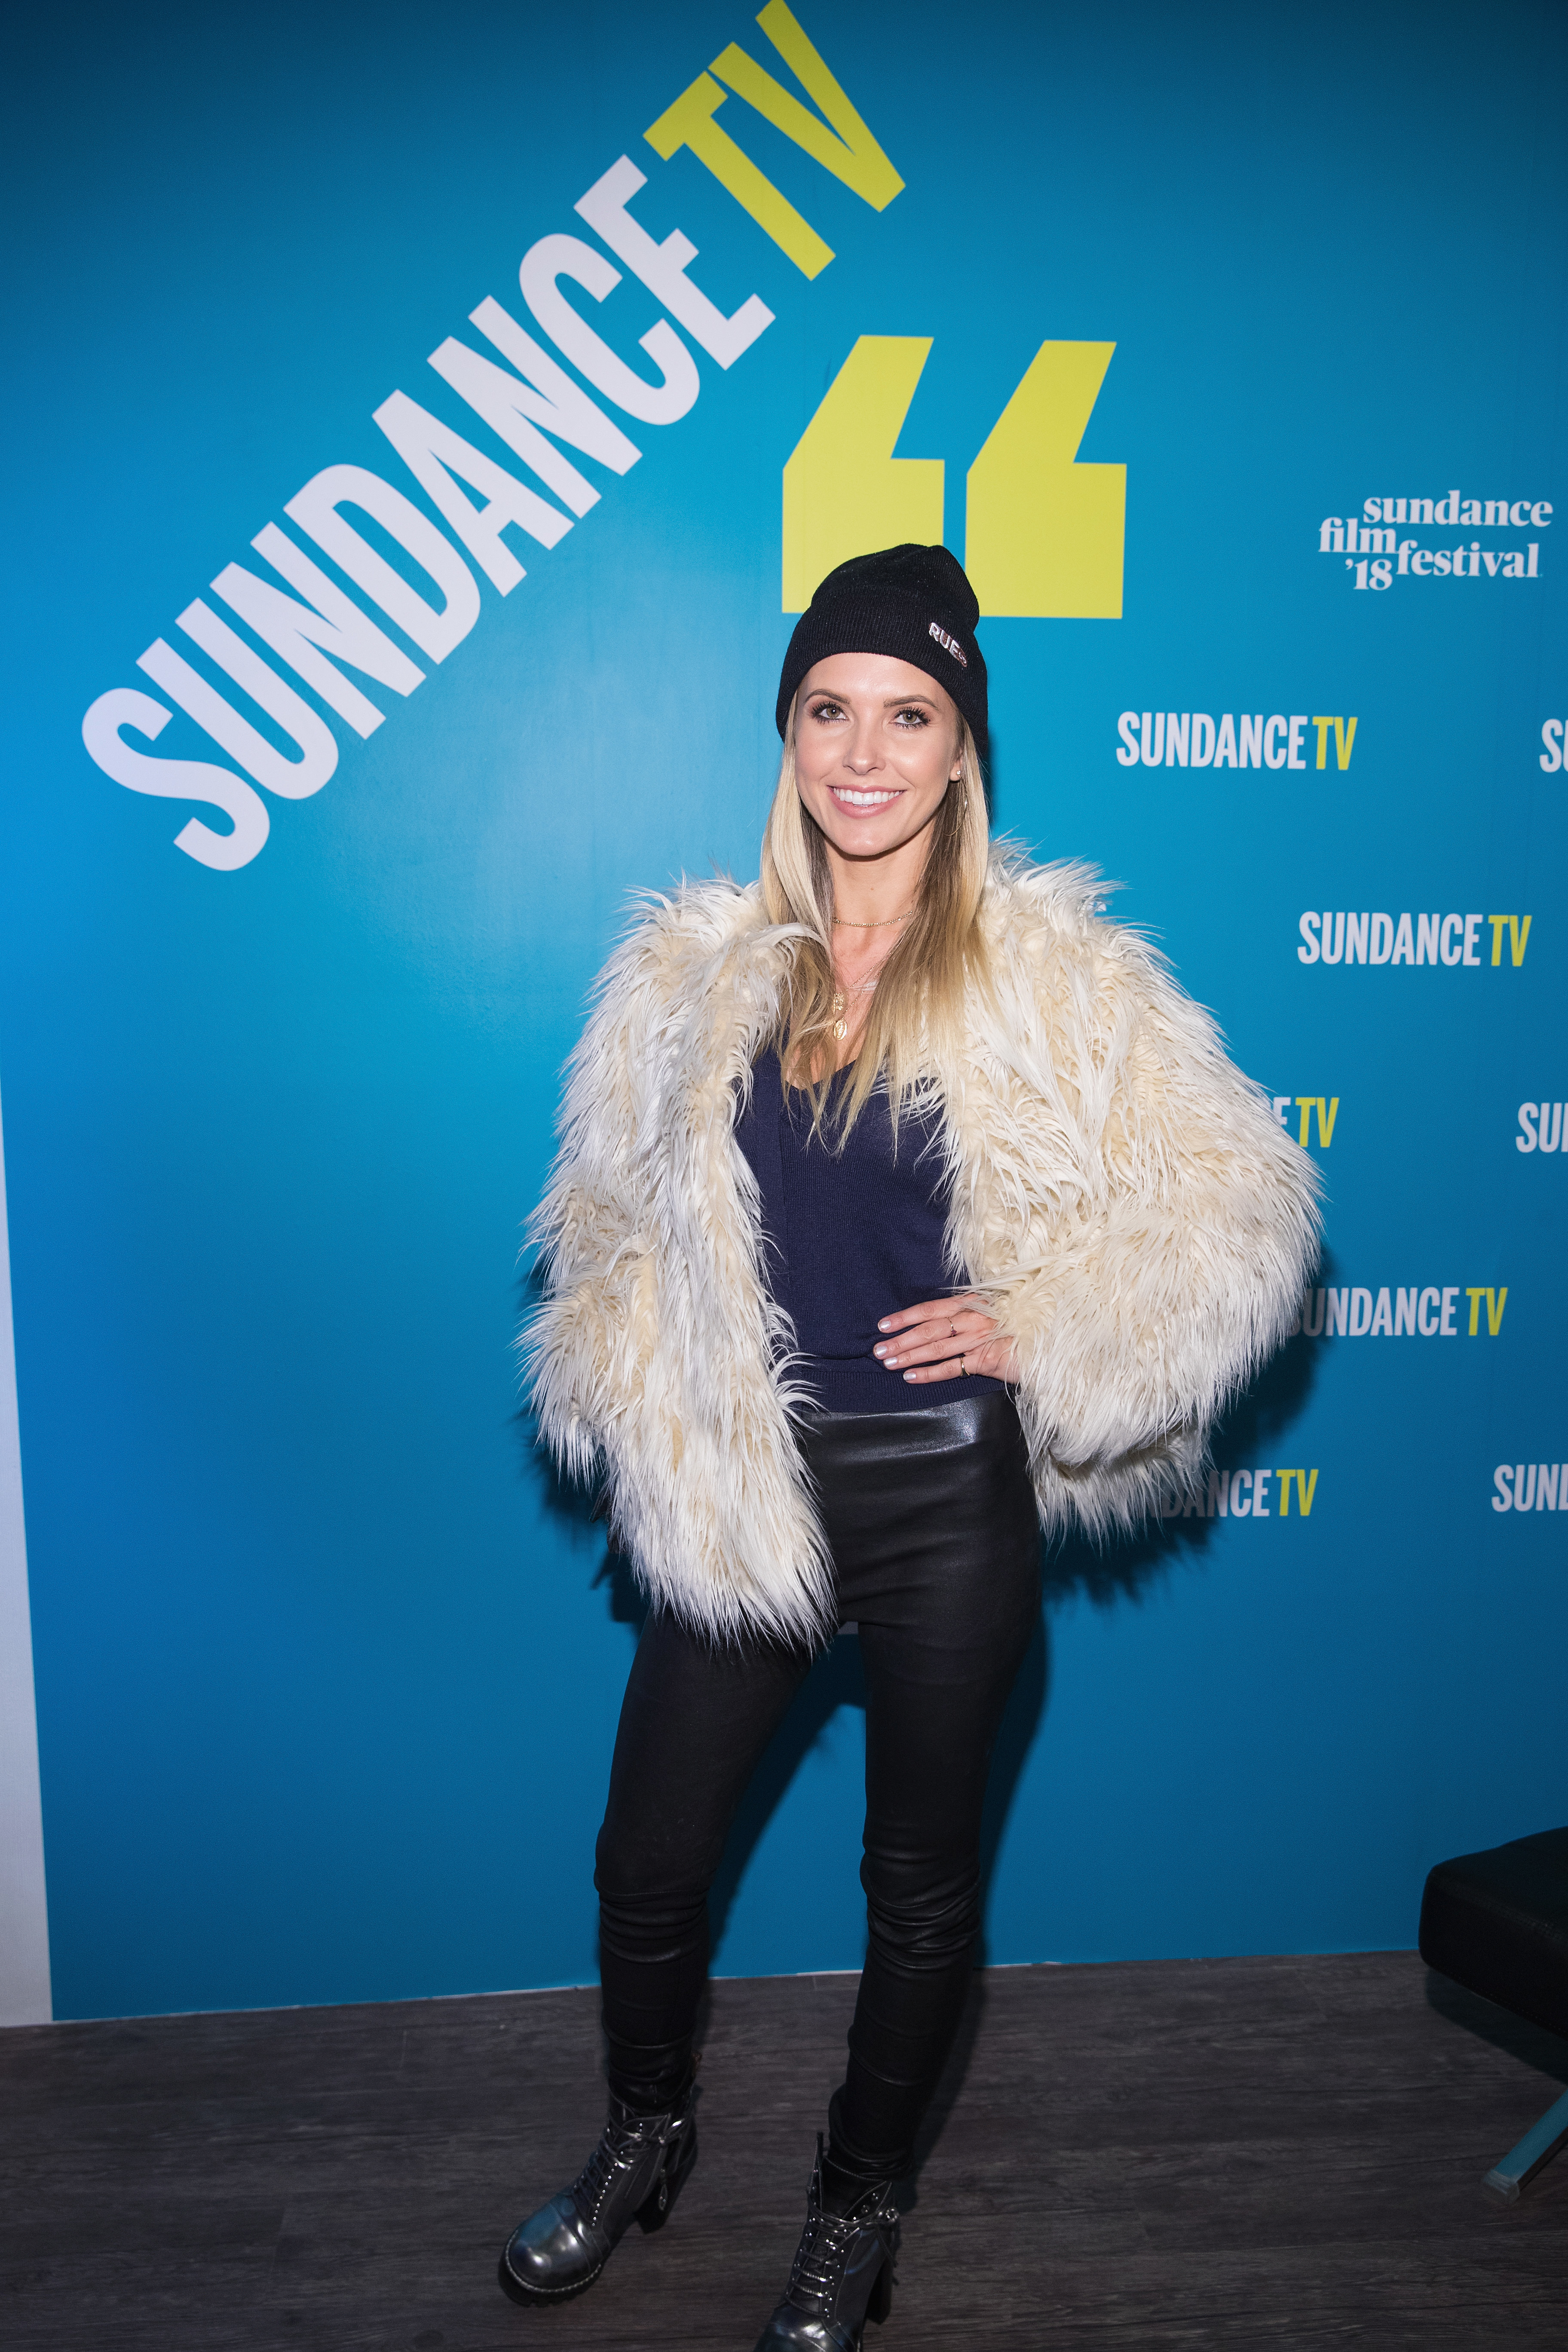 Audrina Patridge attends the 2018 Sundance Film Festival Official Kickoff Party Hosted By SundanceTV at Sundance TV HQ in Park City on Jan. 19, 2018.